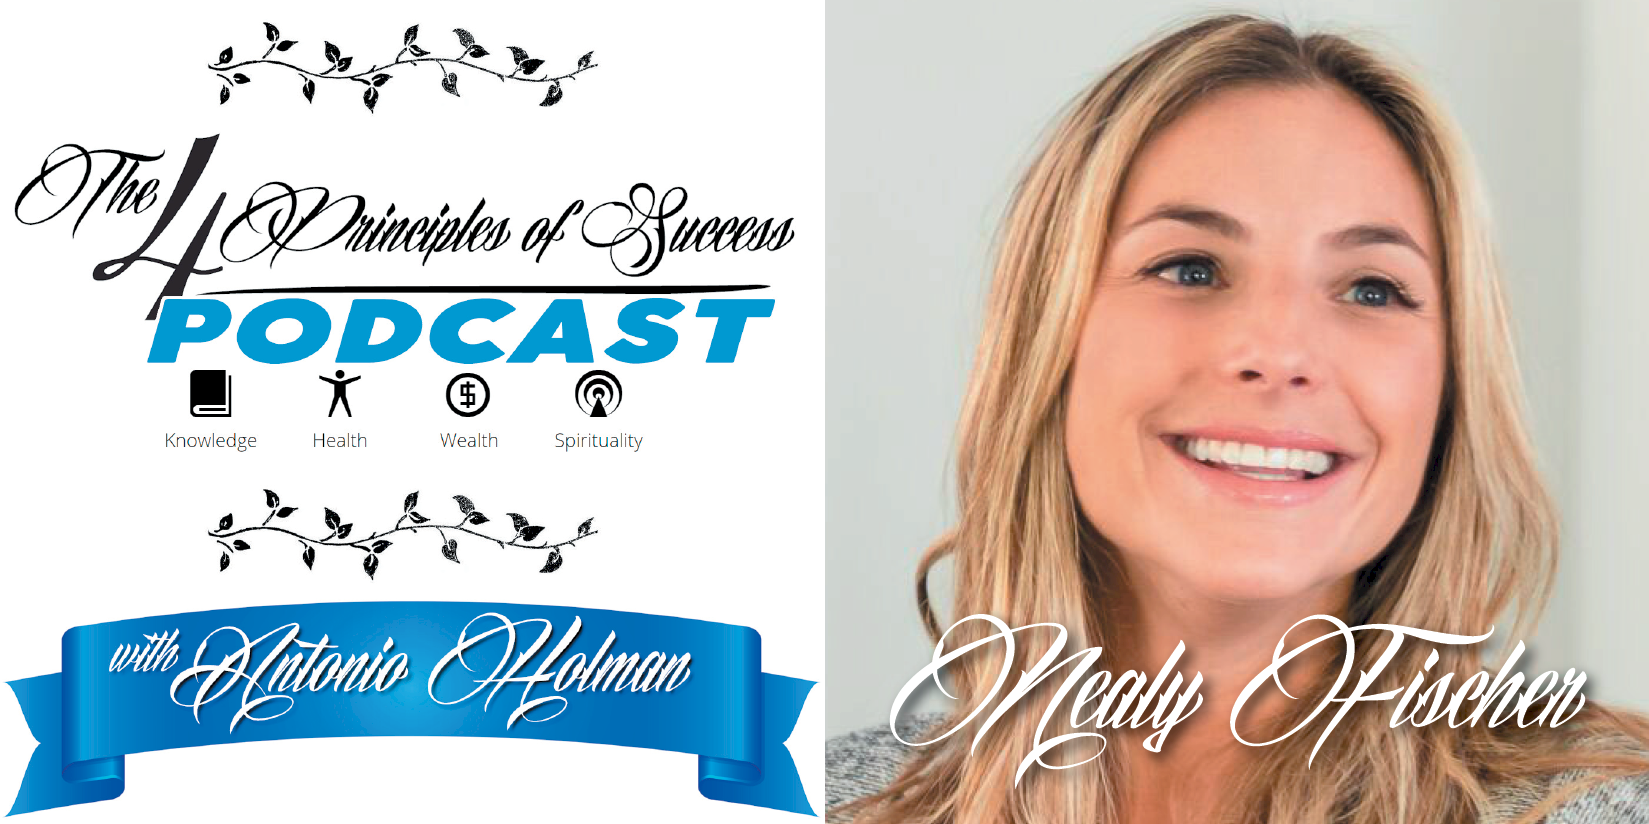 The 4 Principles of Success guest Nealy Fischer